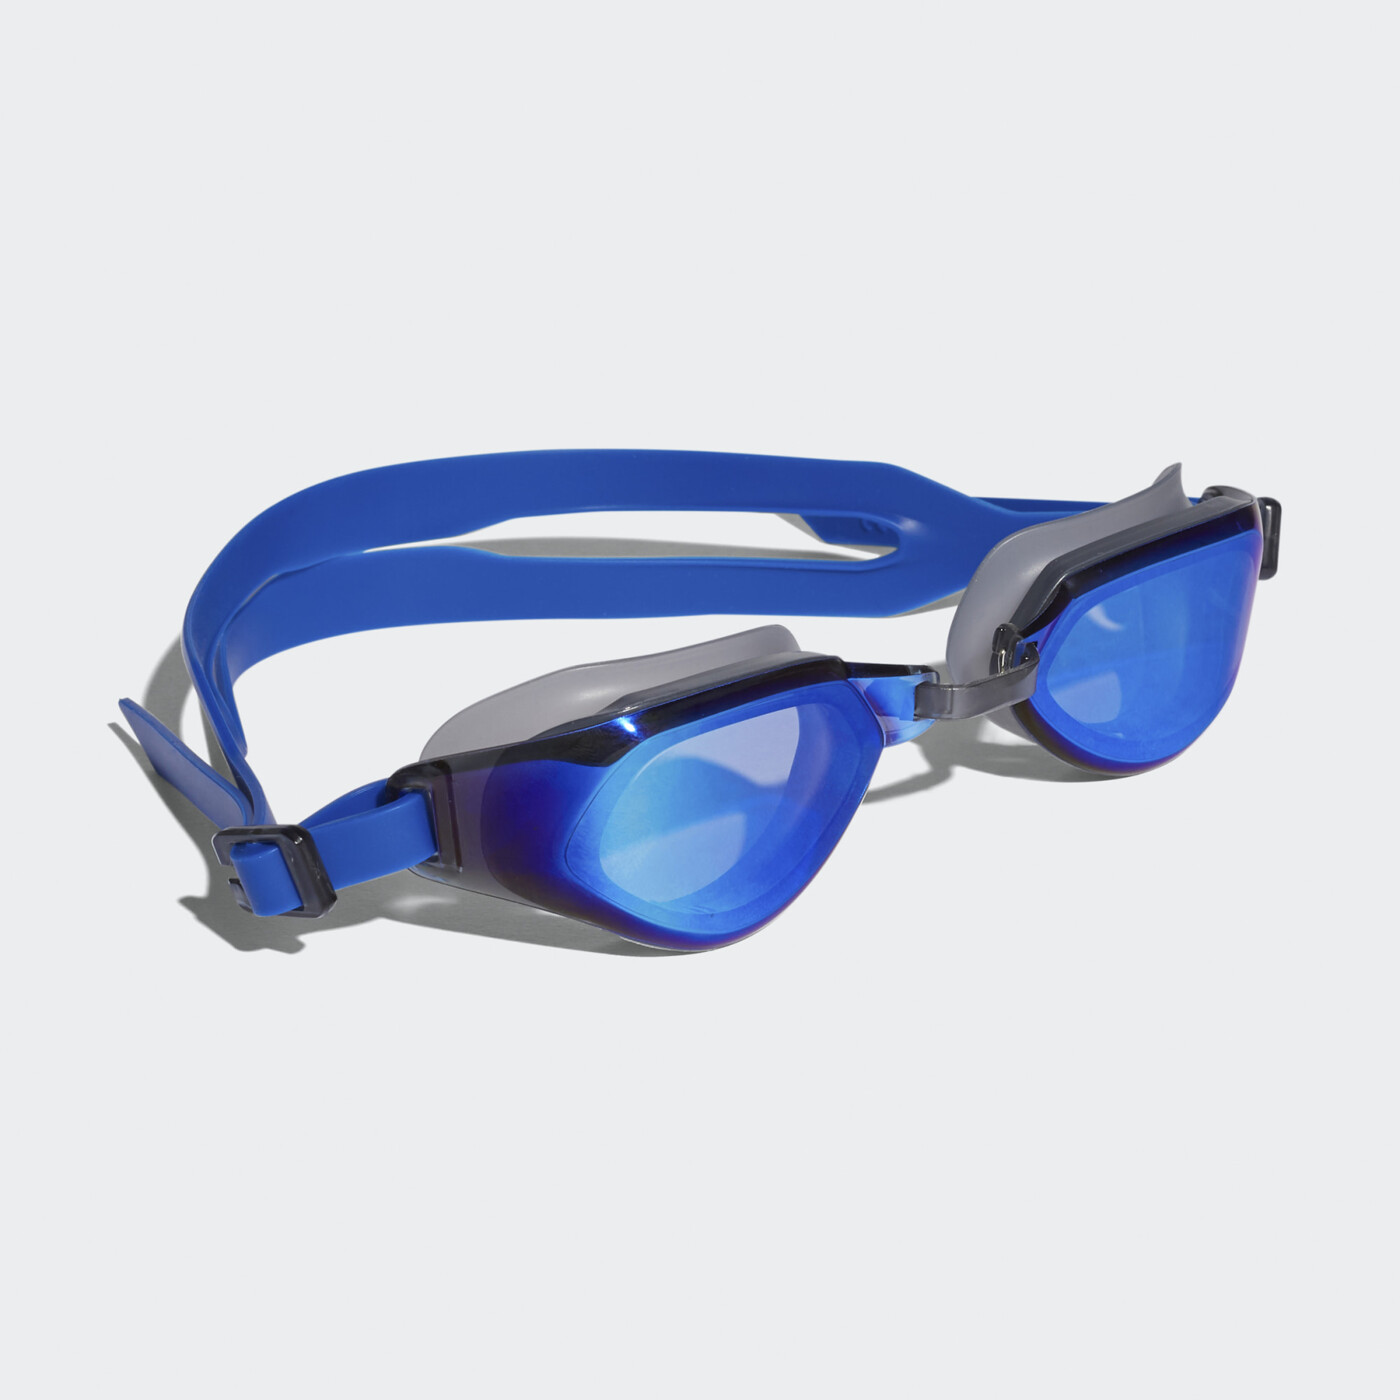 ADIDAS PERSISTAR FIT MIRRORED SCHWIMMBRILLE